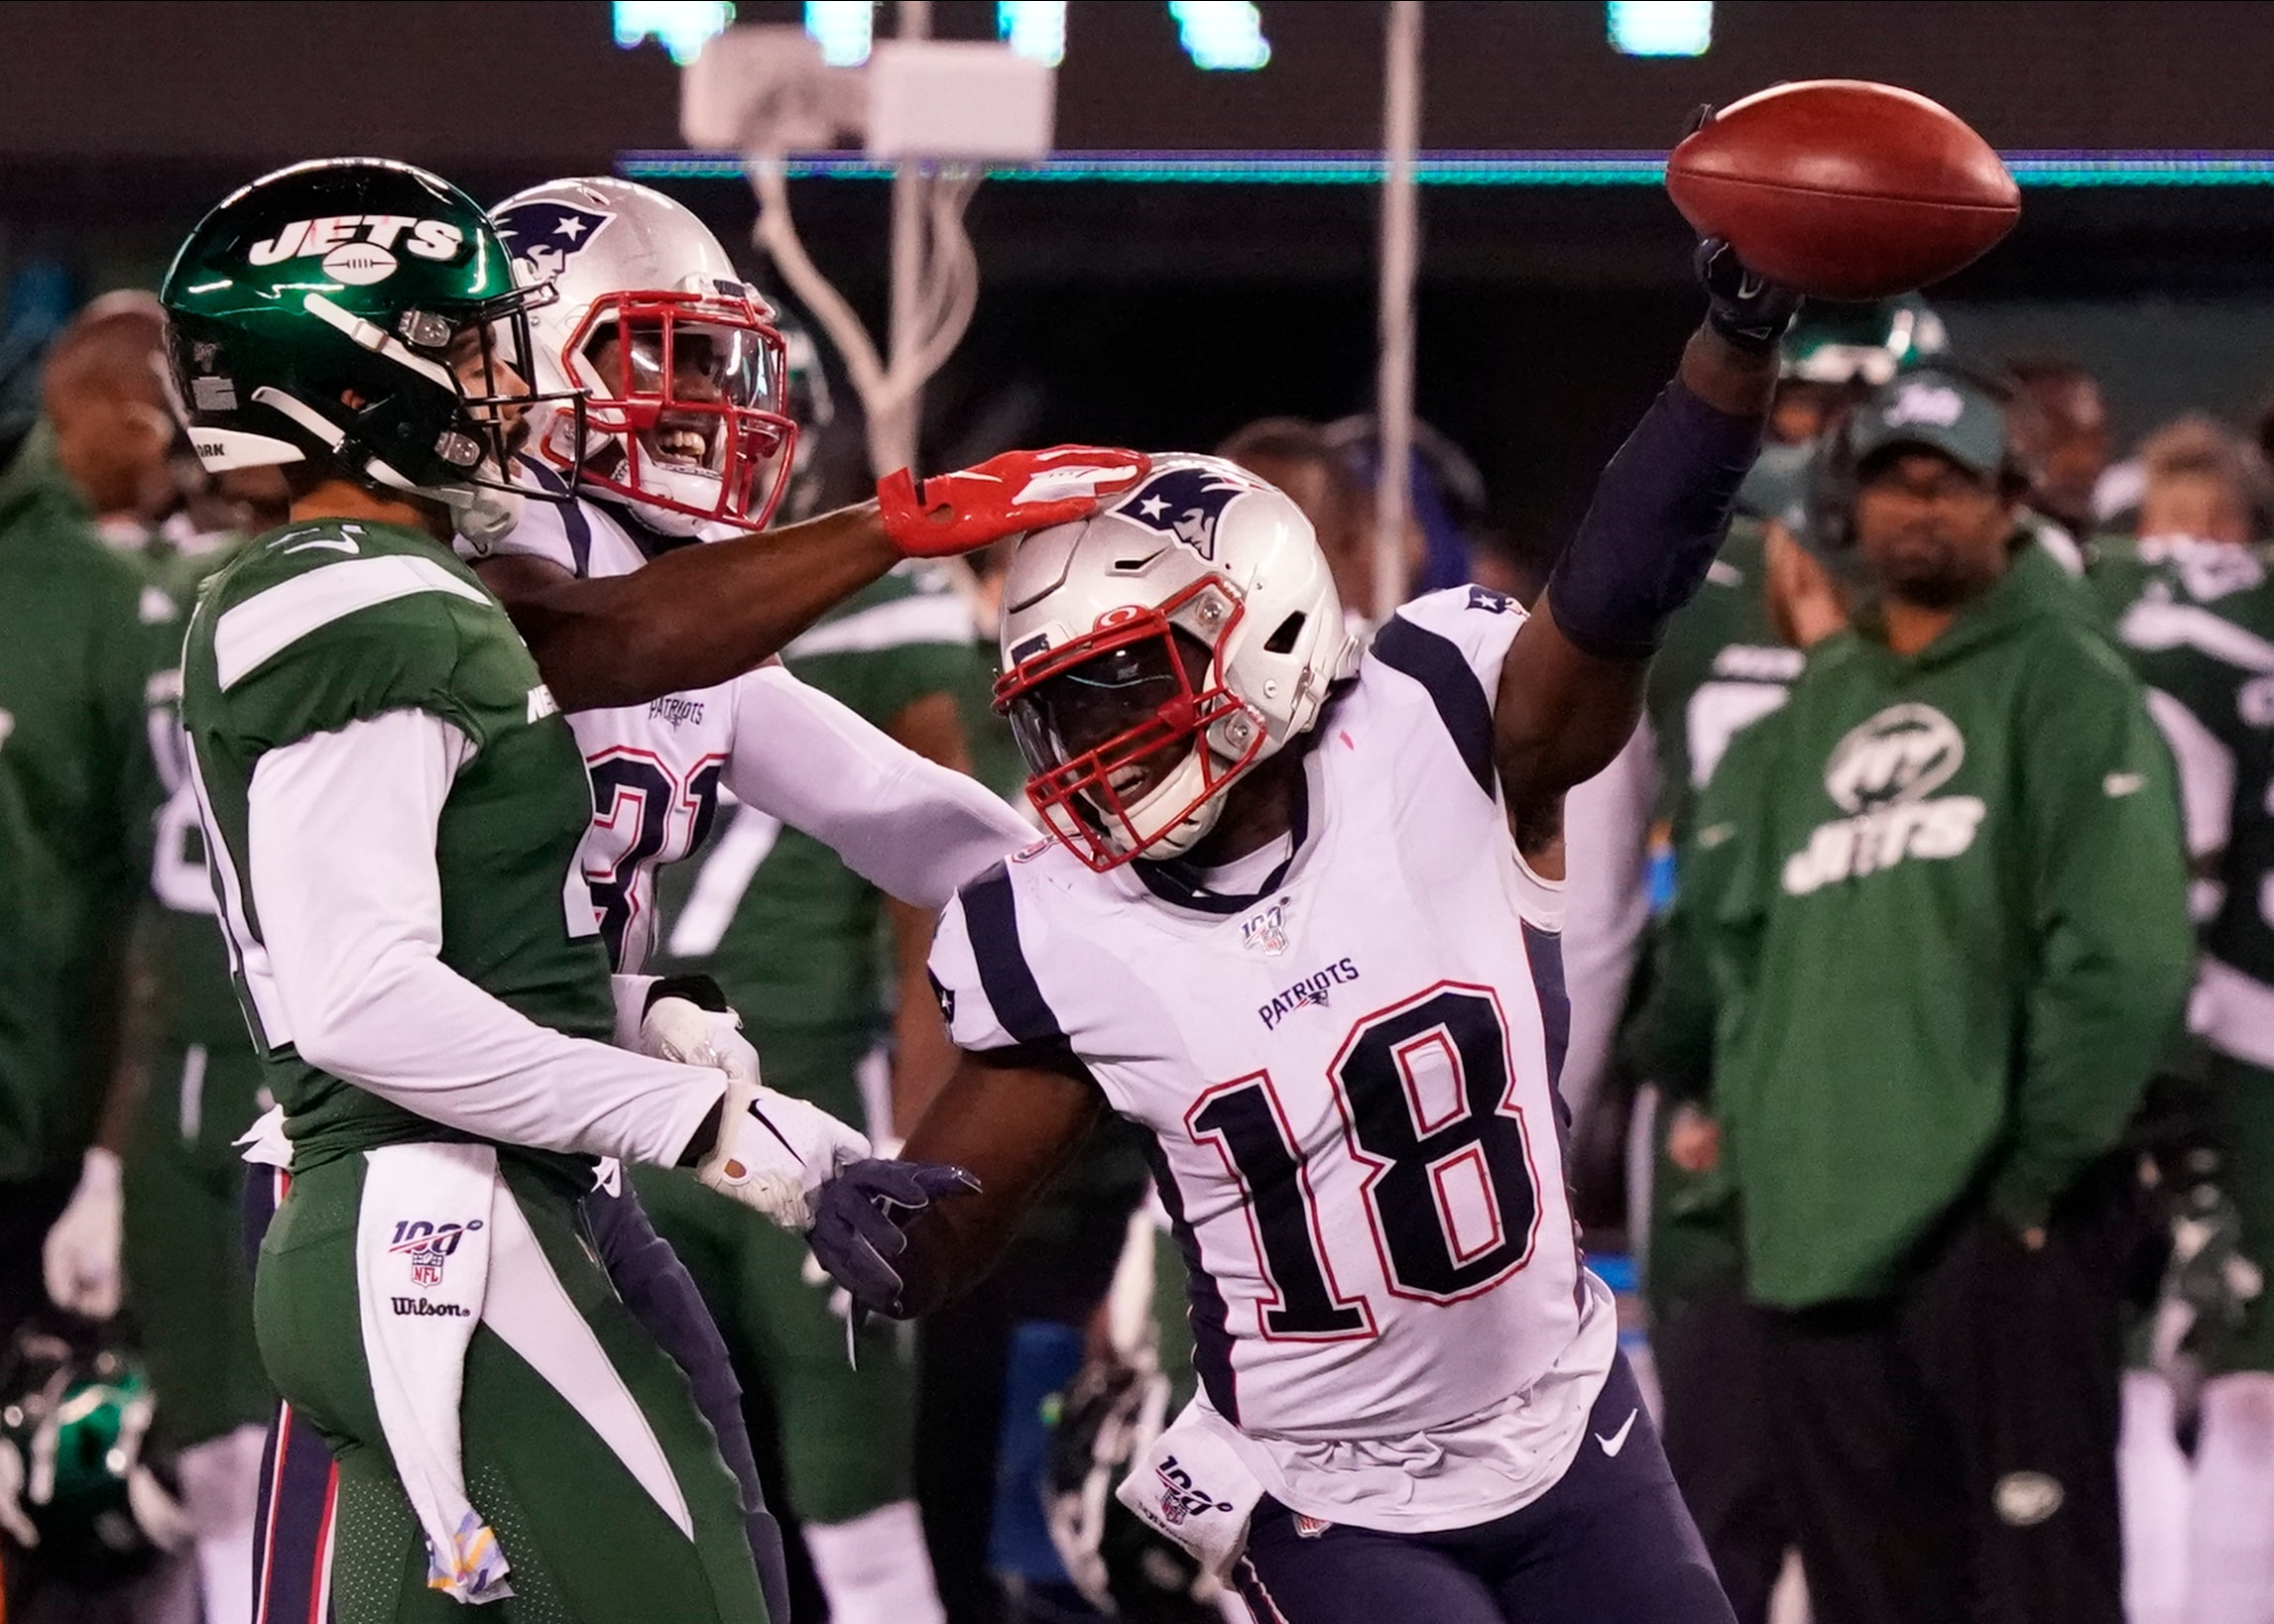 Matthew Slater hoping to return to New England in 2020